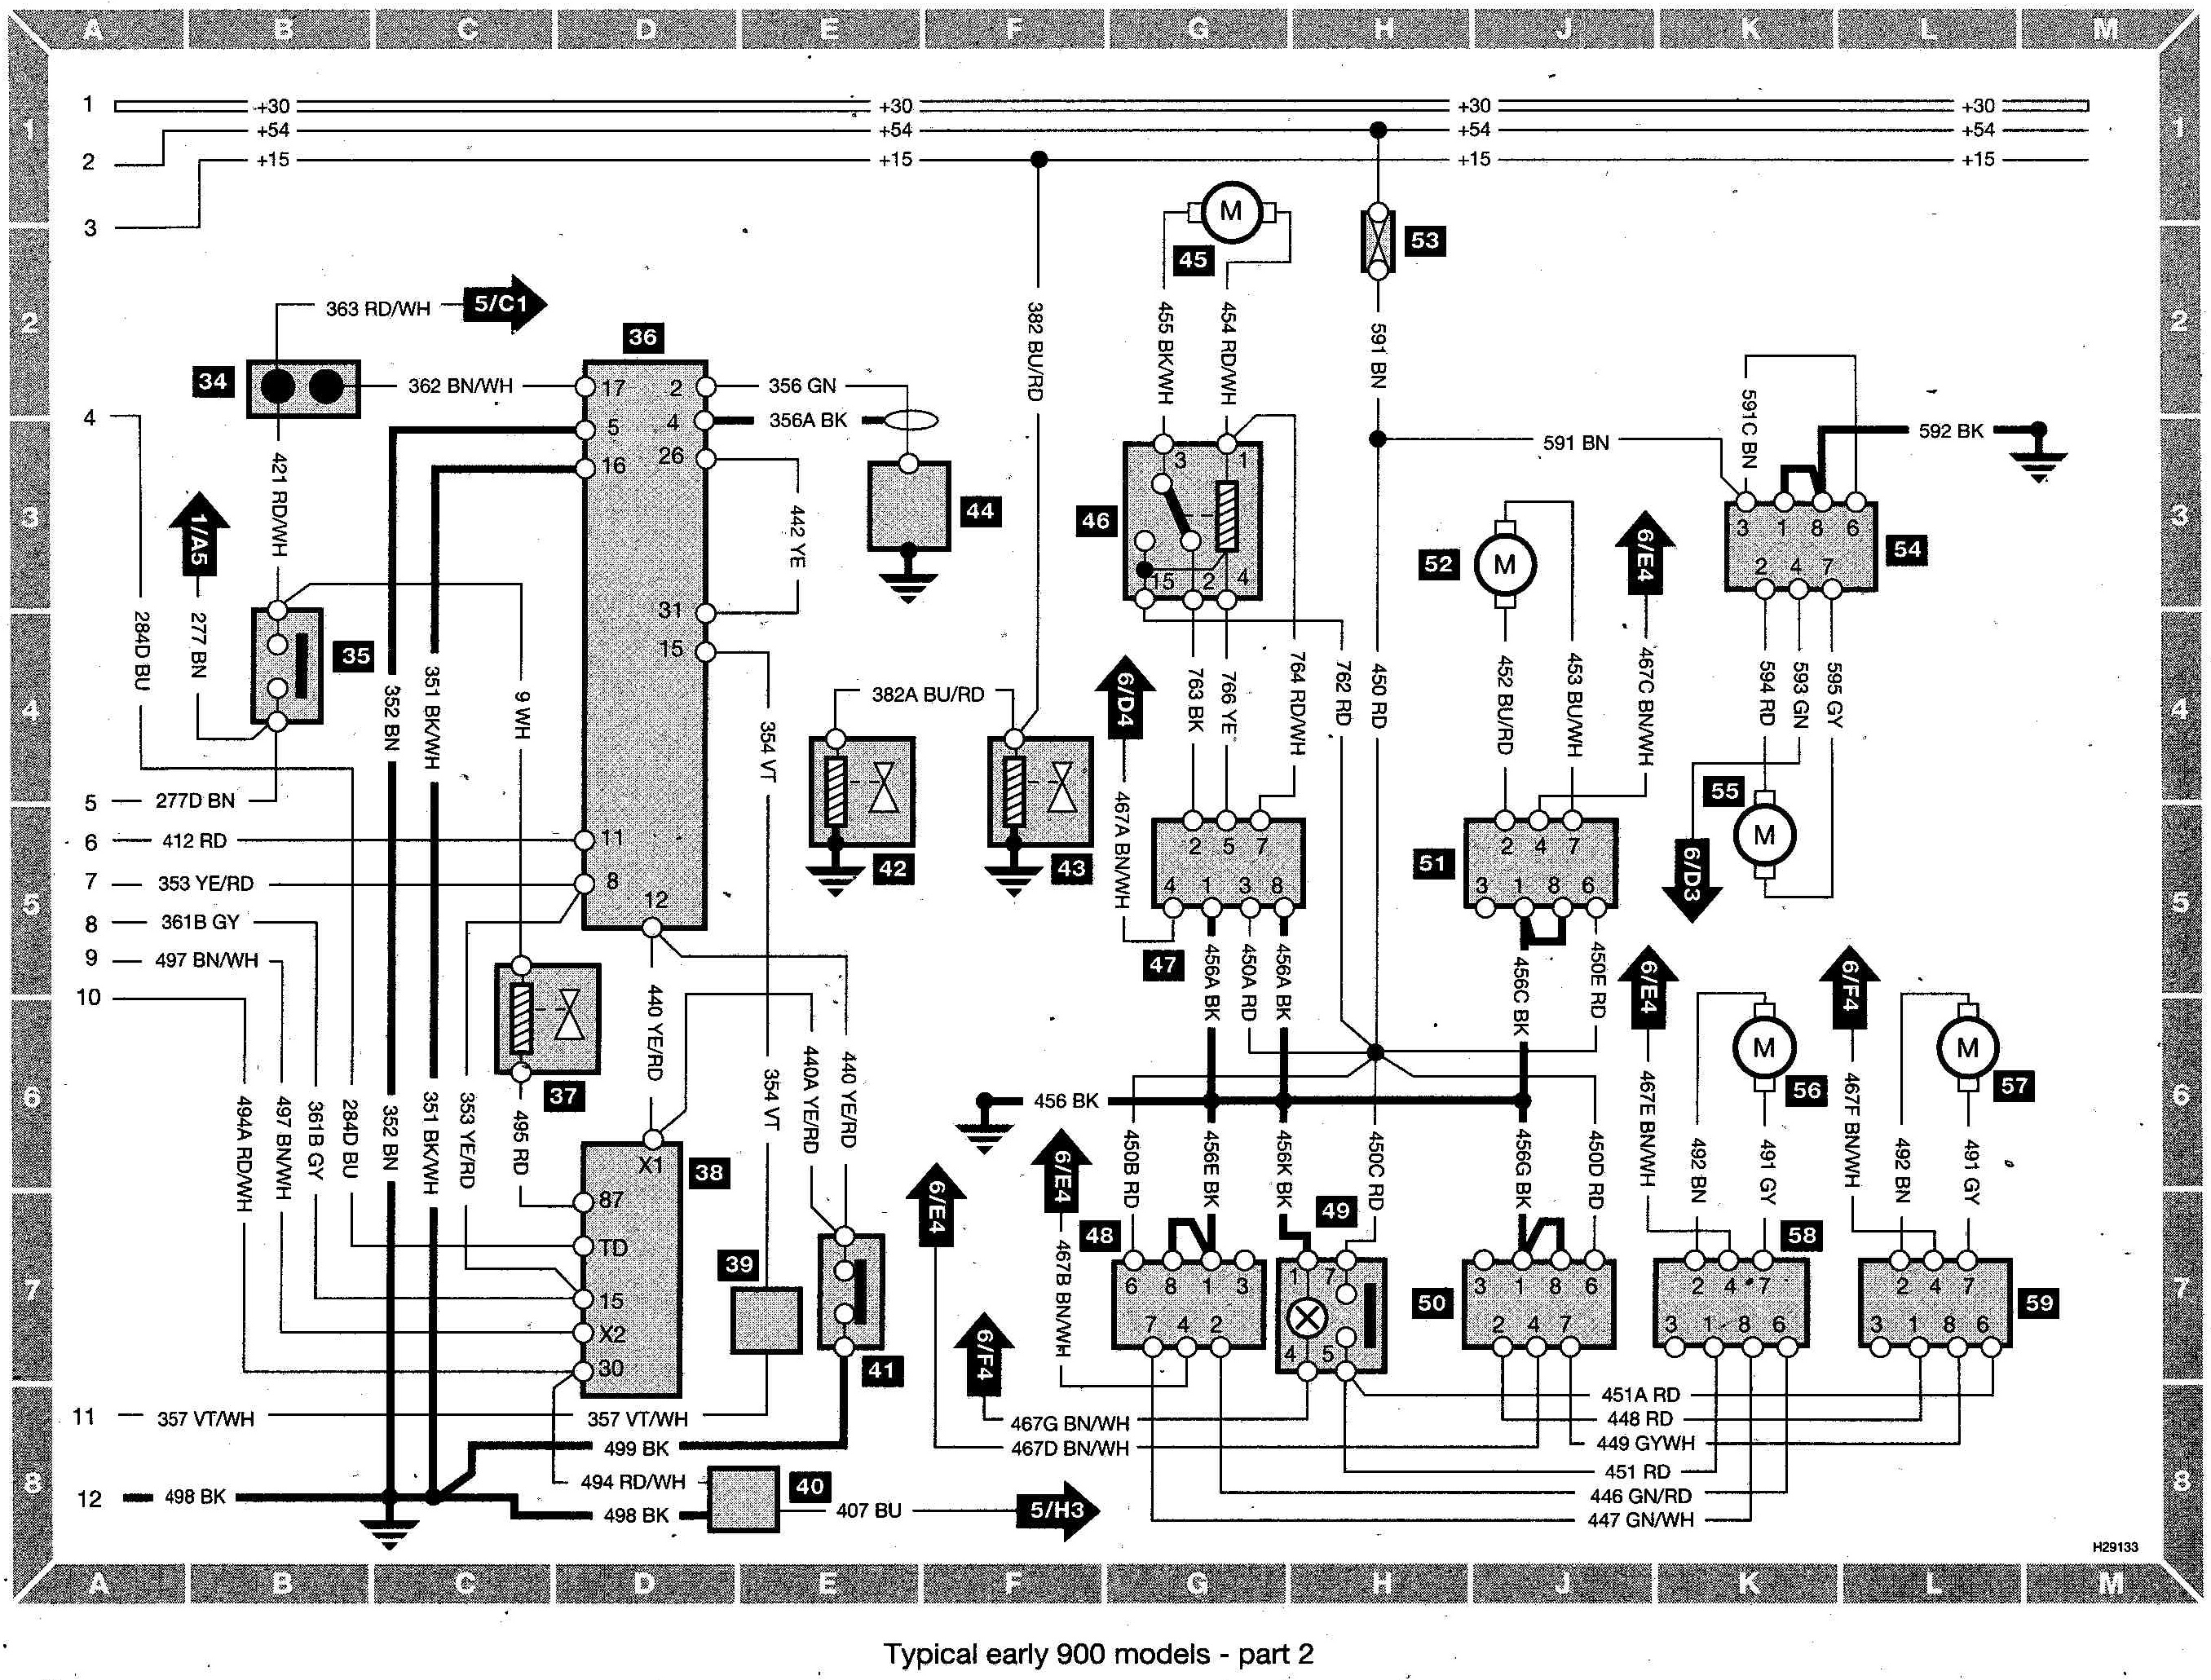 Saab 900 Wiring diagram (early models) part 2?resized665%2C505 saab wiring diagrams efcaviation com BU-353 Light Green at n-0.co